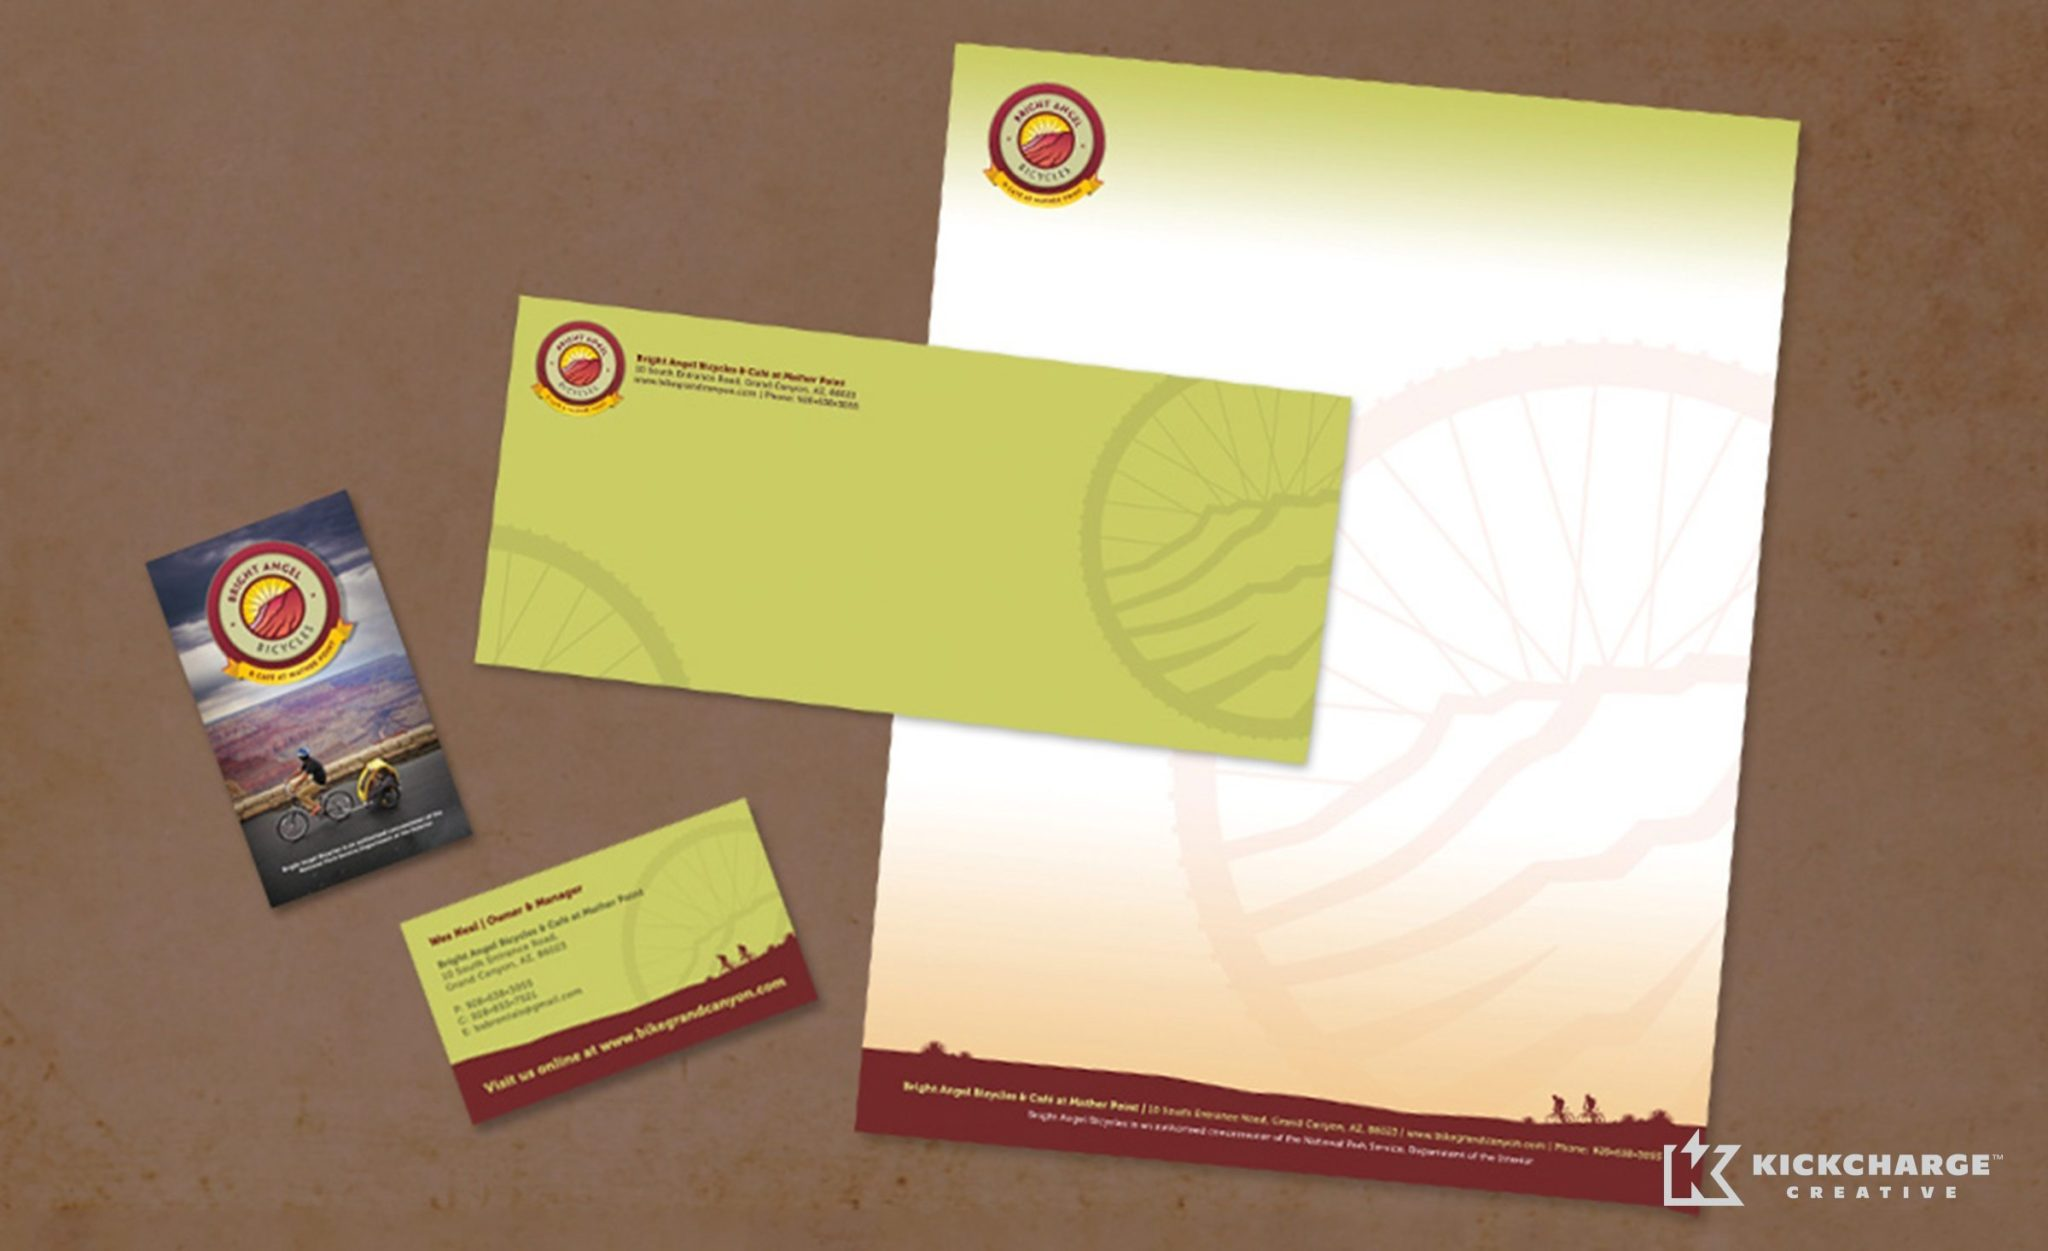 Stationery design for a company that offers bicycle rentals and tours in the Grand Canyon.